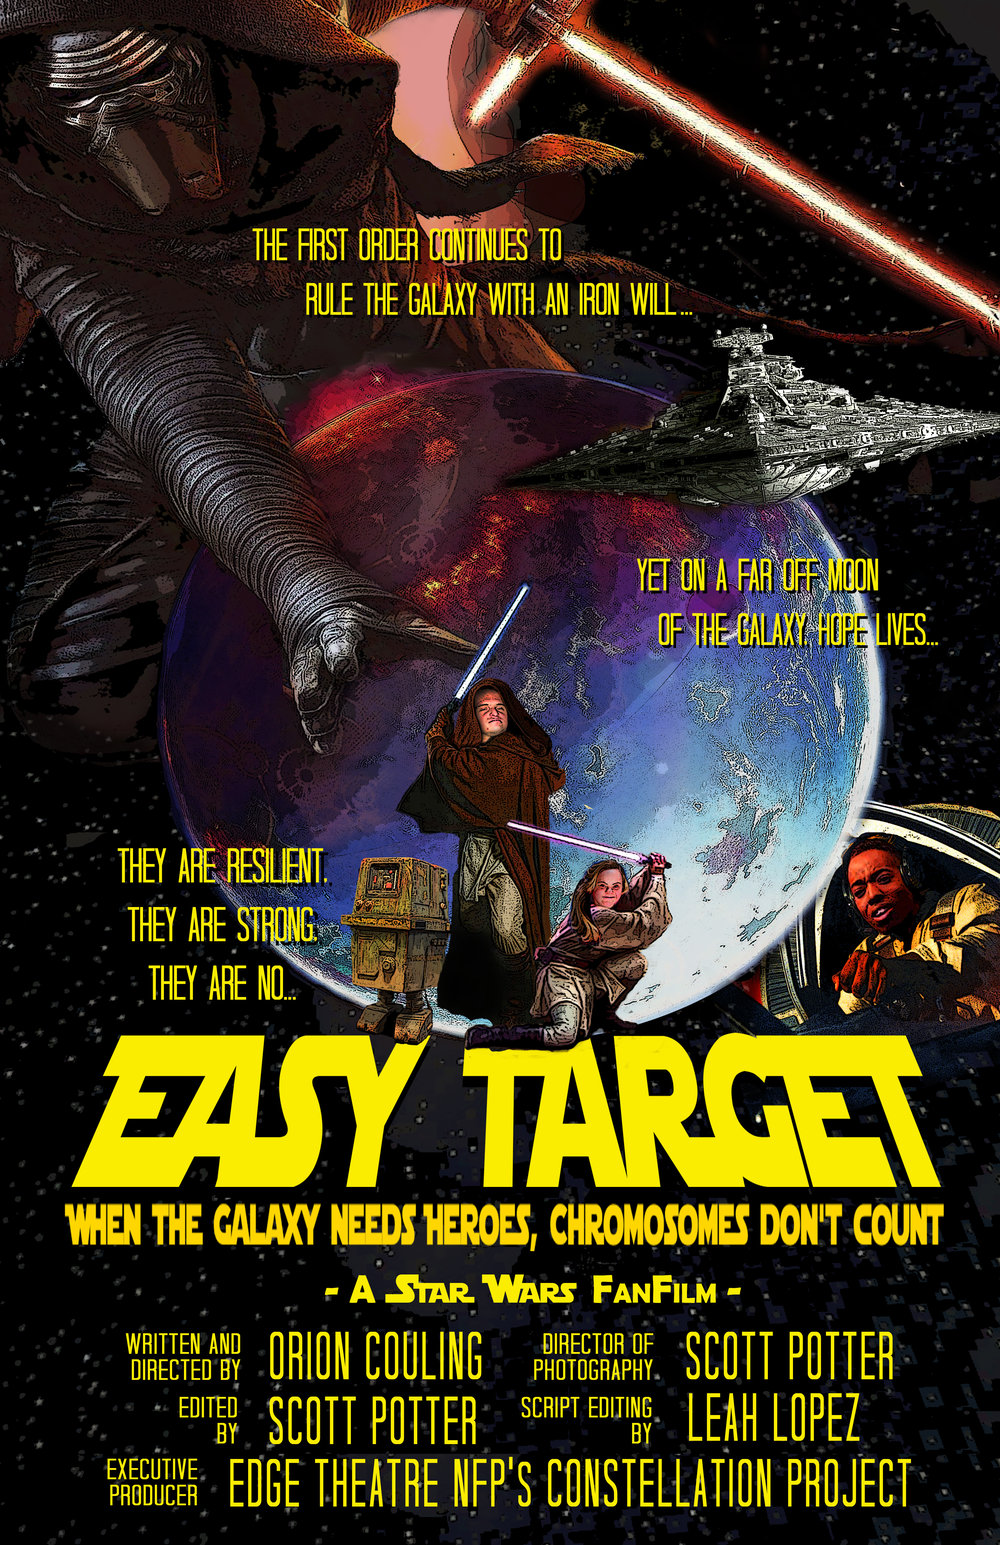 EASY TARGET Star Wars Fan Film extra.jpg